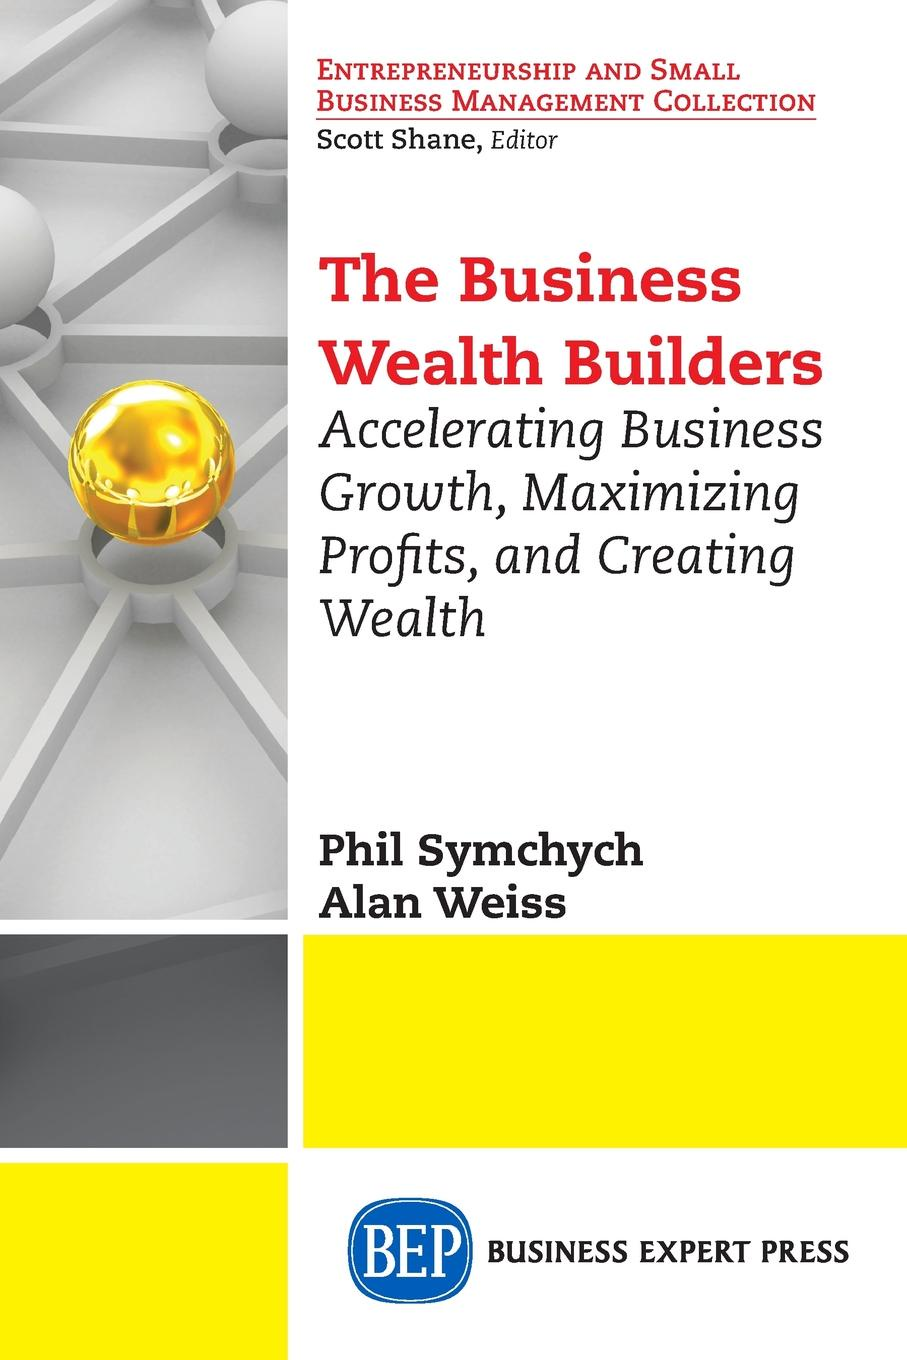 Phil Symchych, Alan Weiss The Business Wealth Builders. Accelerating Business Growth, Maximizing Profits, and Creating Wealth jordan d lewis trusted partners how companies build mutual trust and win together